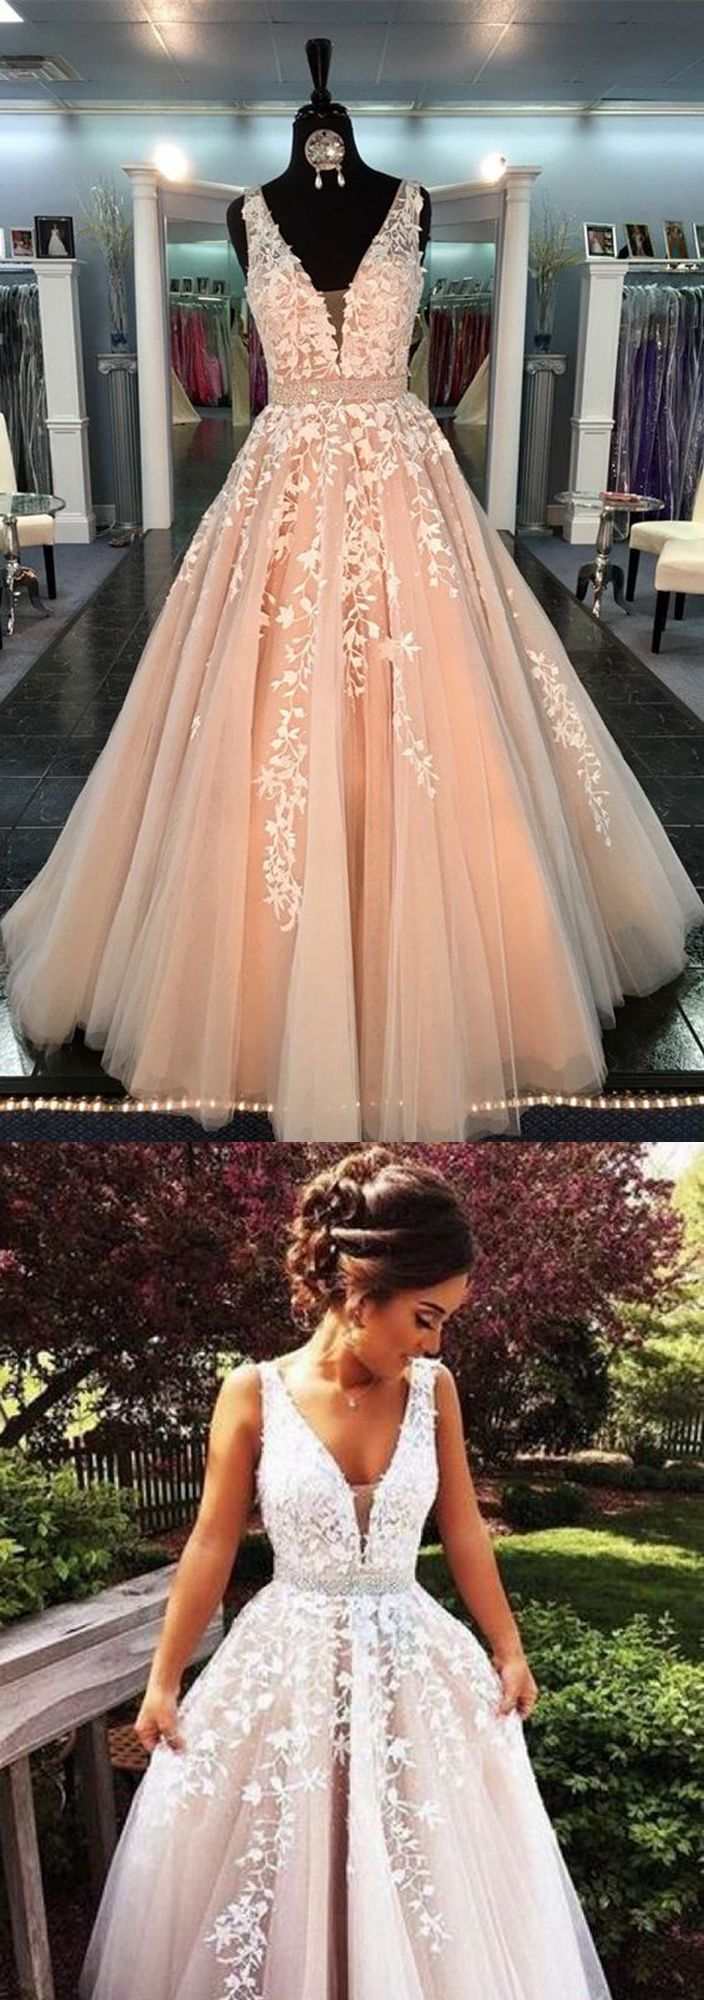 Save  V-Neck Prom Gown,Long Prom Dress,Lace Prom Dresses,Appliques Prom Dress,Sleeveless Formal Dress,Tulle Prom Dresses,Long Prom Dress,New Arrival Prom Gown,Prom Dresses